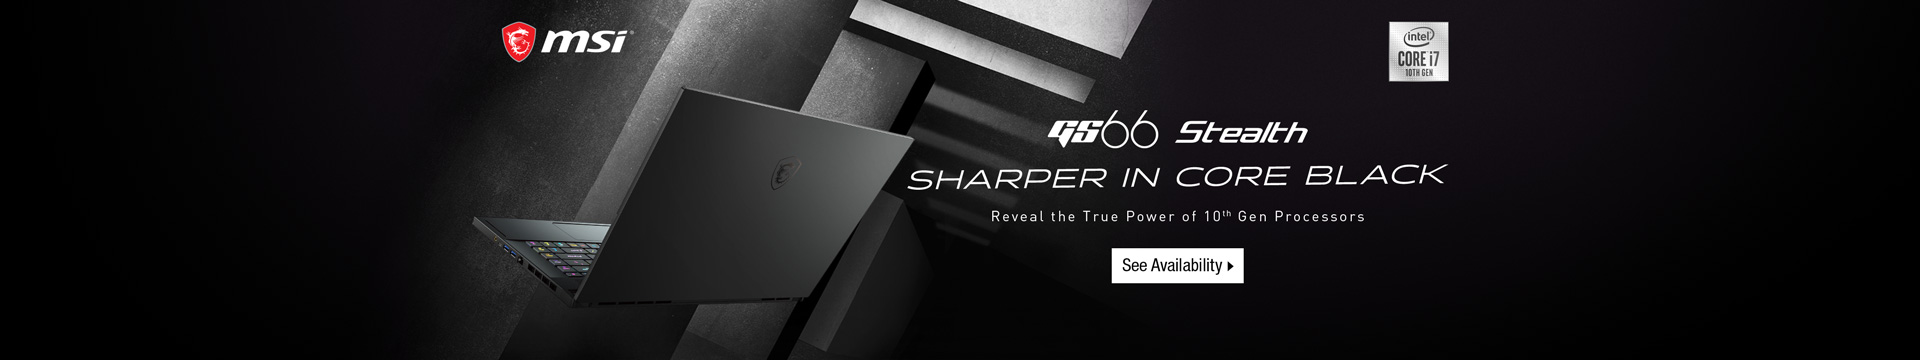 Sharper in CORE black